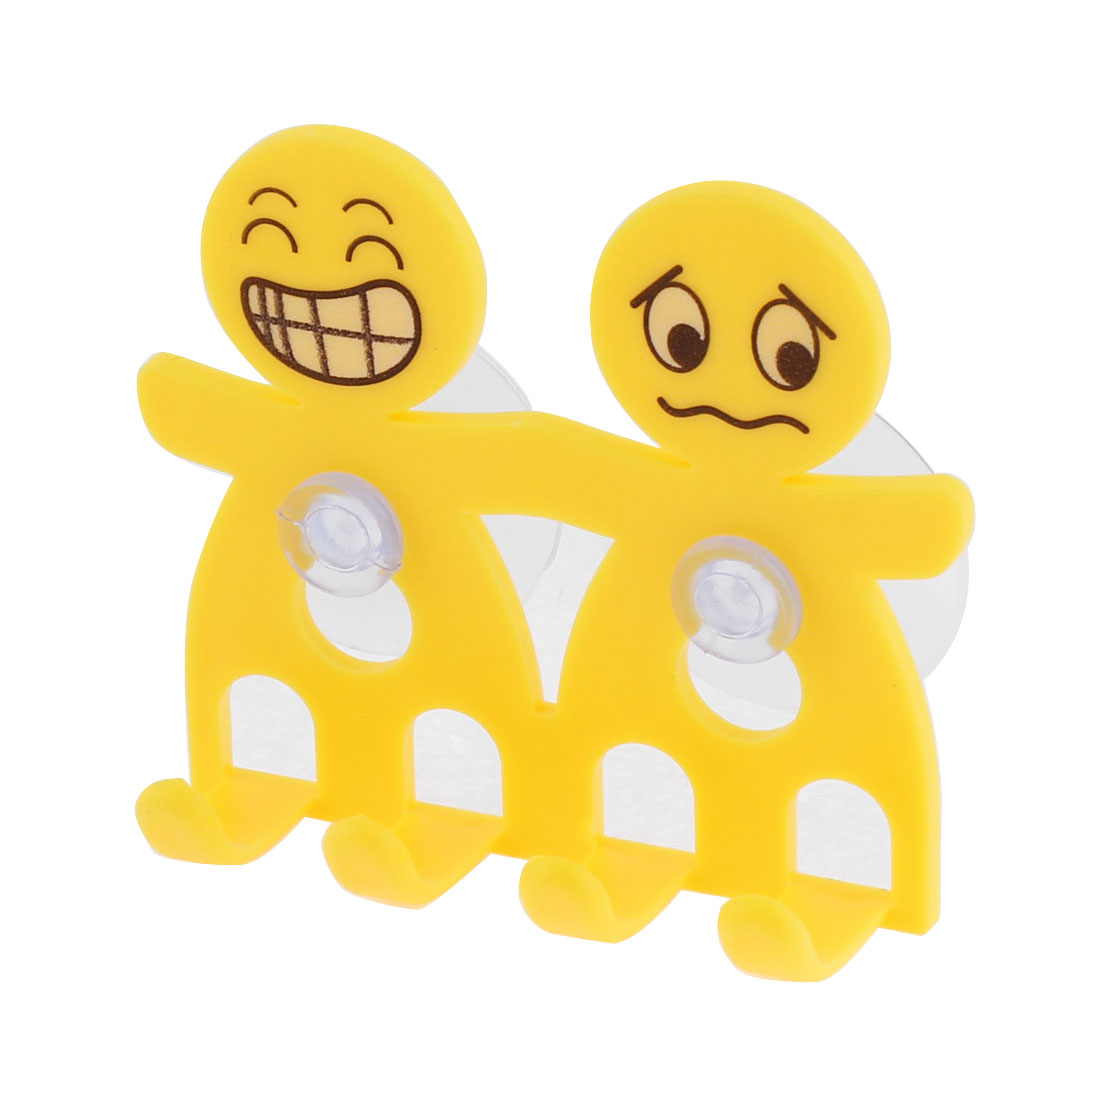 Suction Cup Toothbrush Toothpaste Holder Organizer Yellow